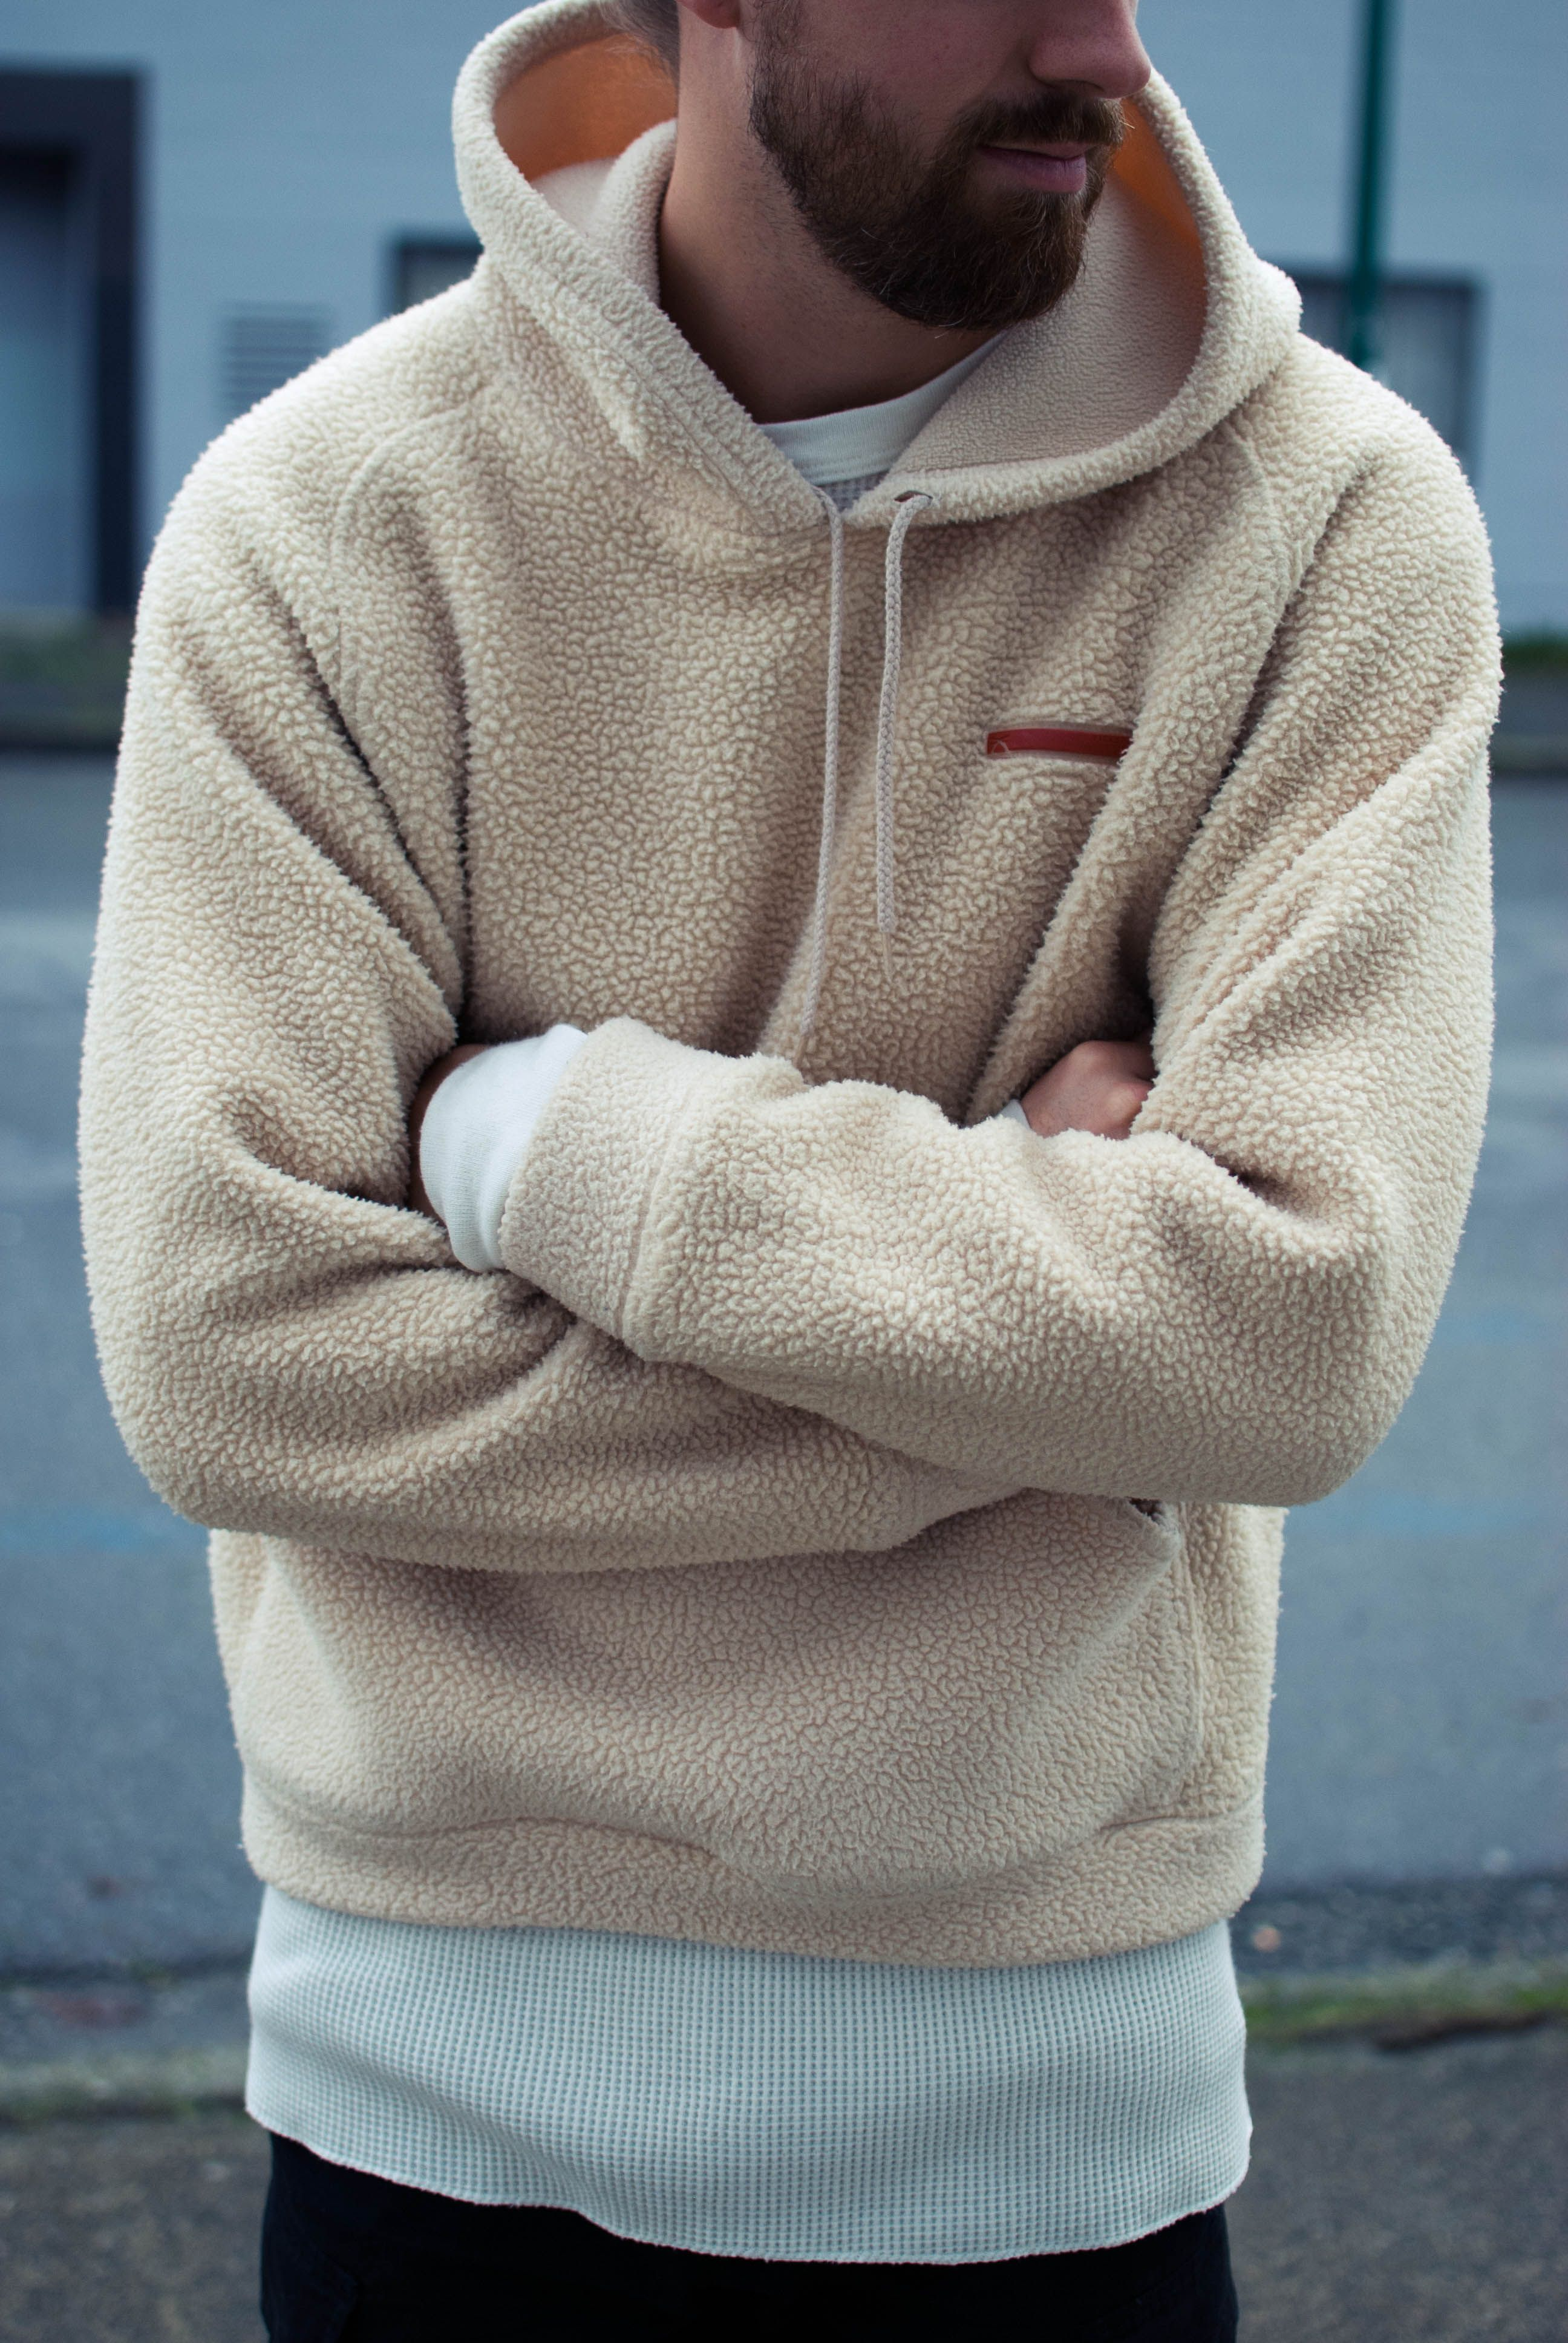 drag to resize or shift+drag to move Hoodies men style